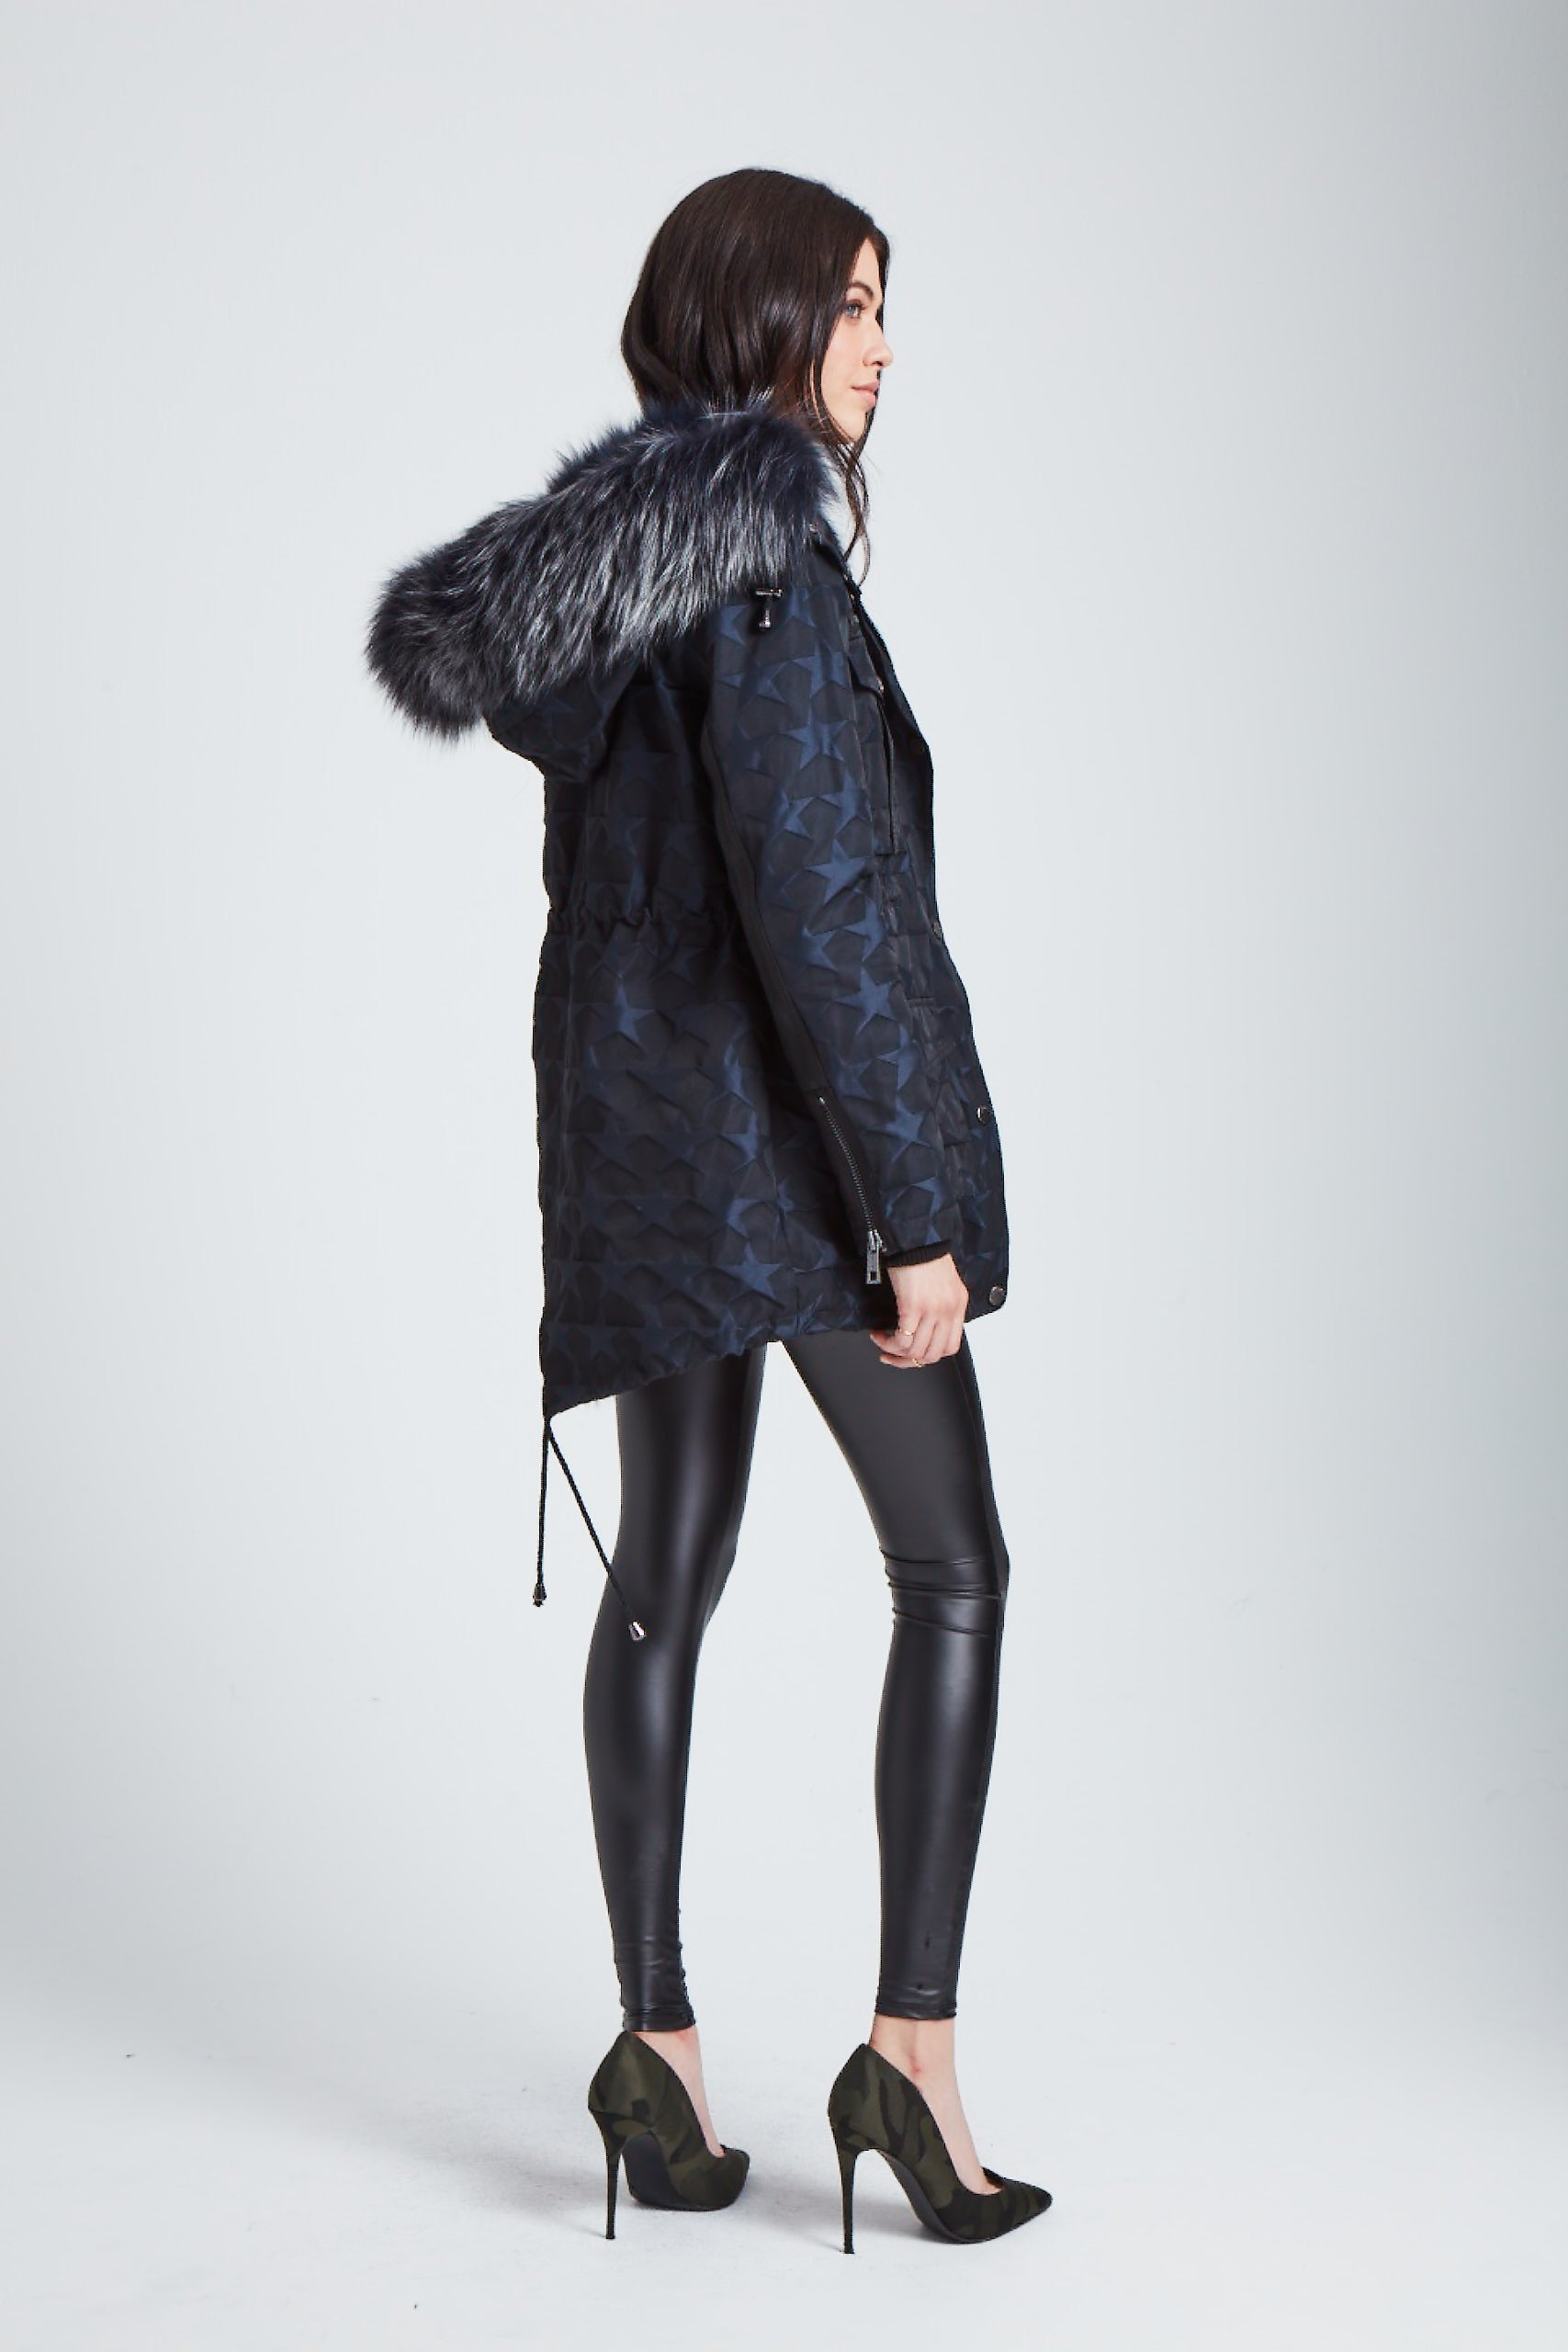 The Constellation Coat